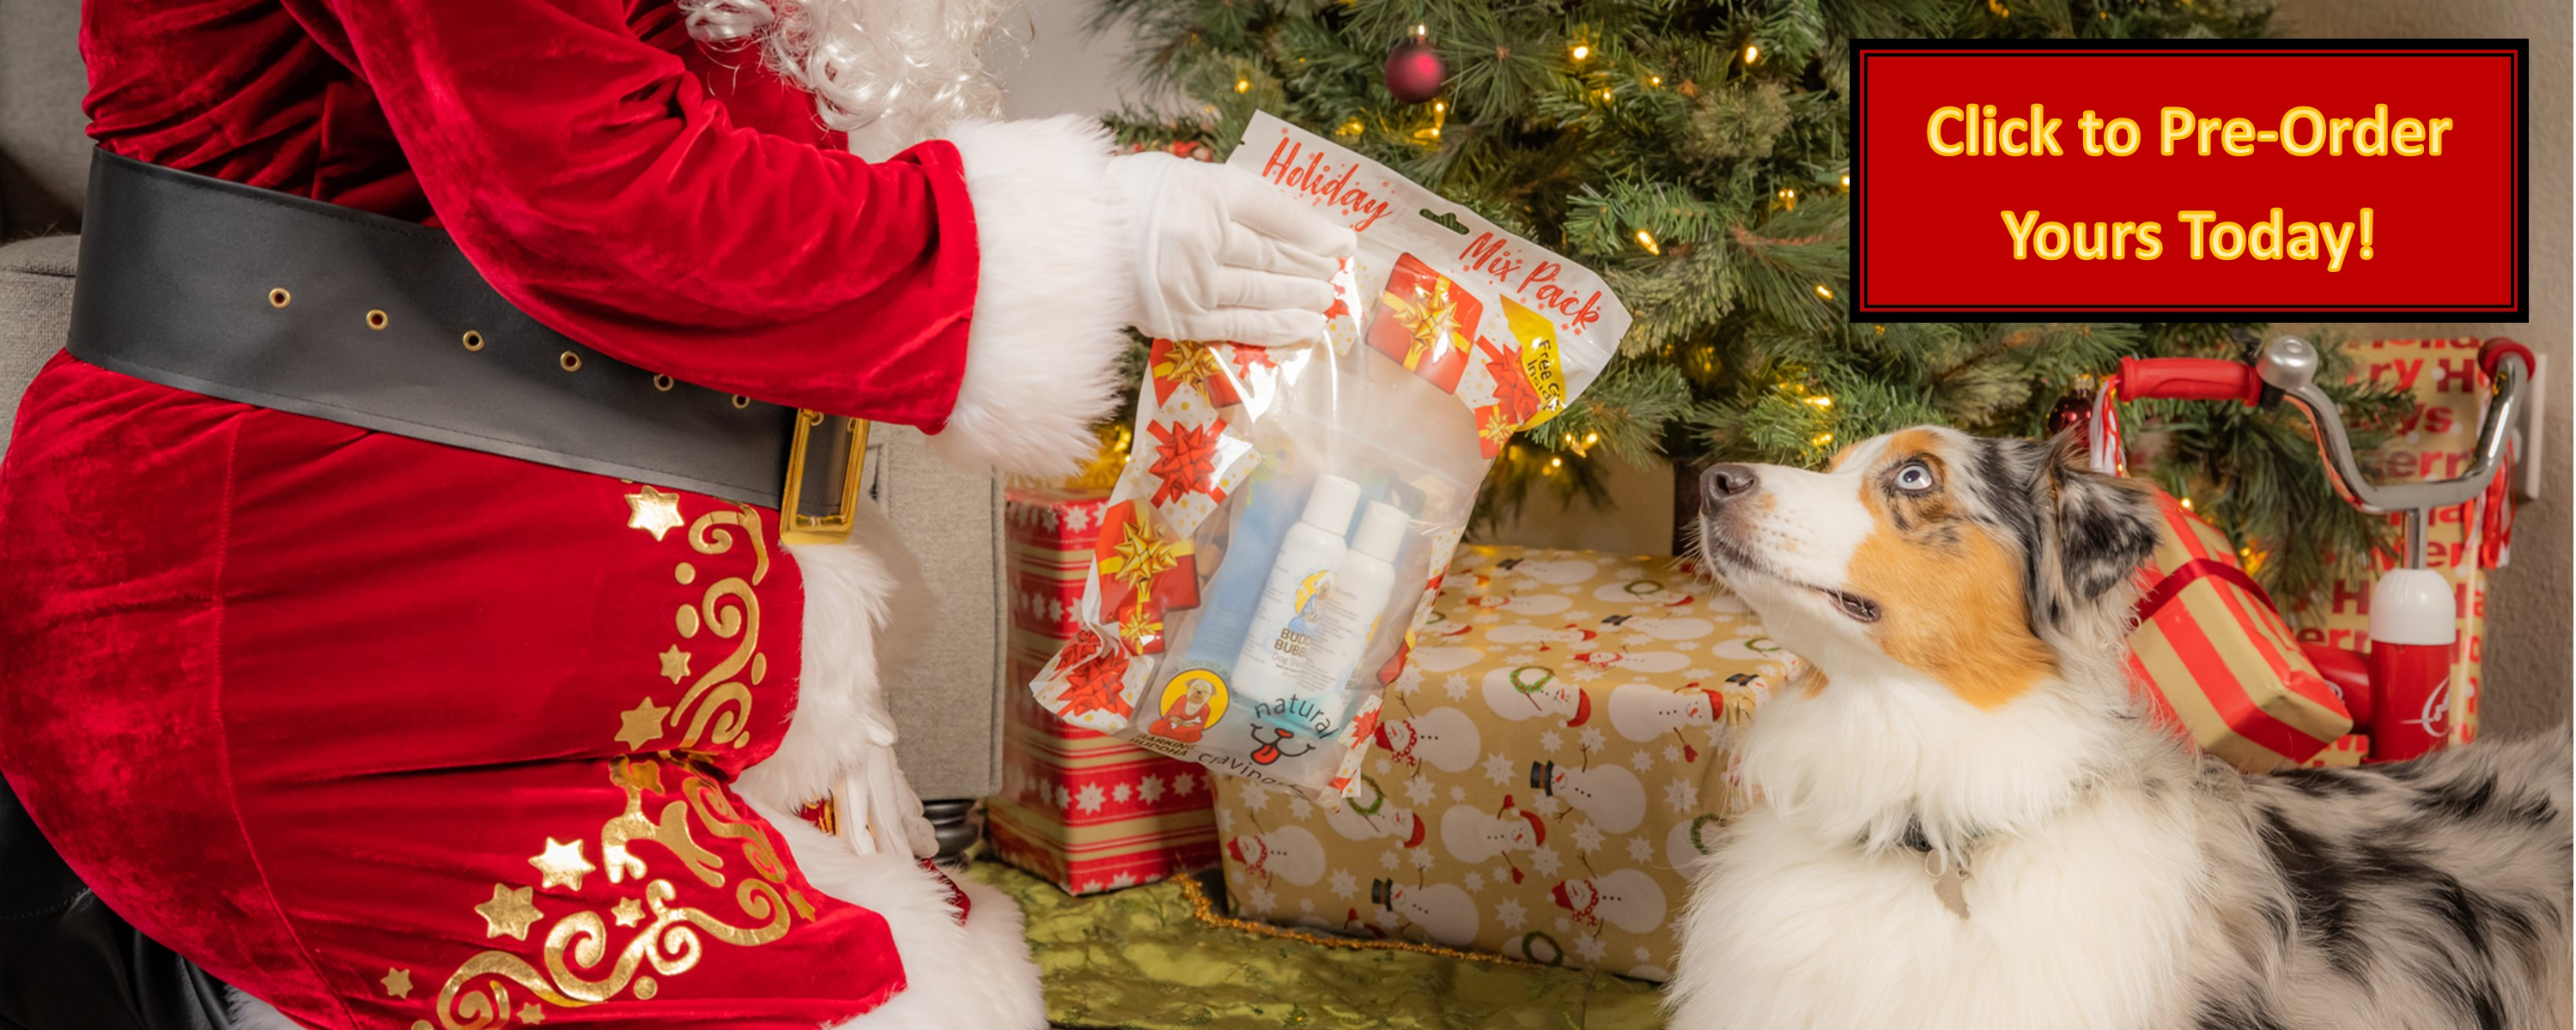 Santa Claus Giving Dog a Barking Buddha Holiday Mix Pack Gift for Dogs